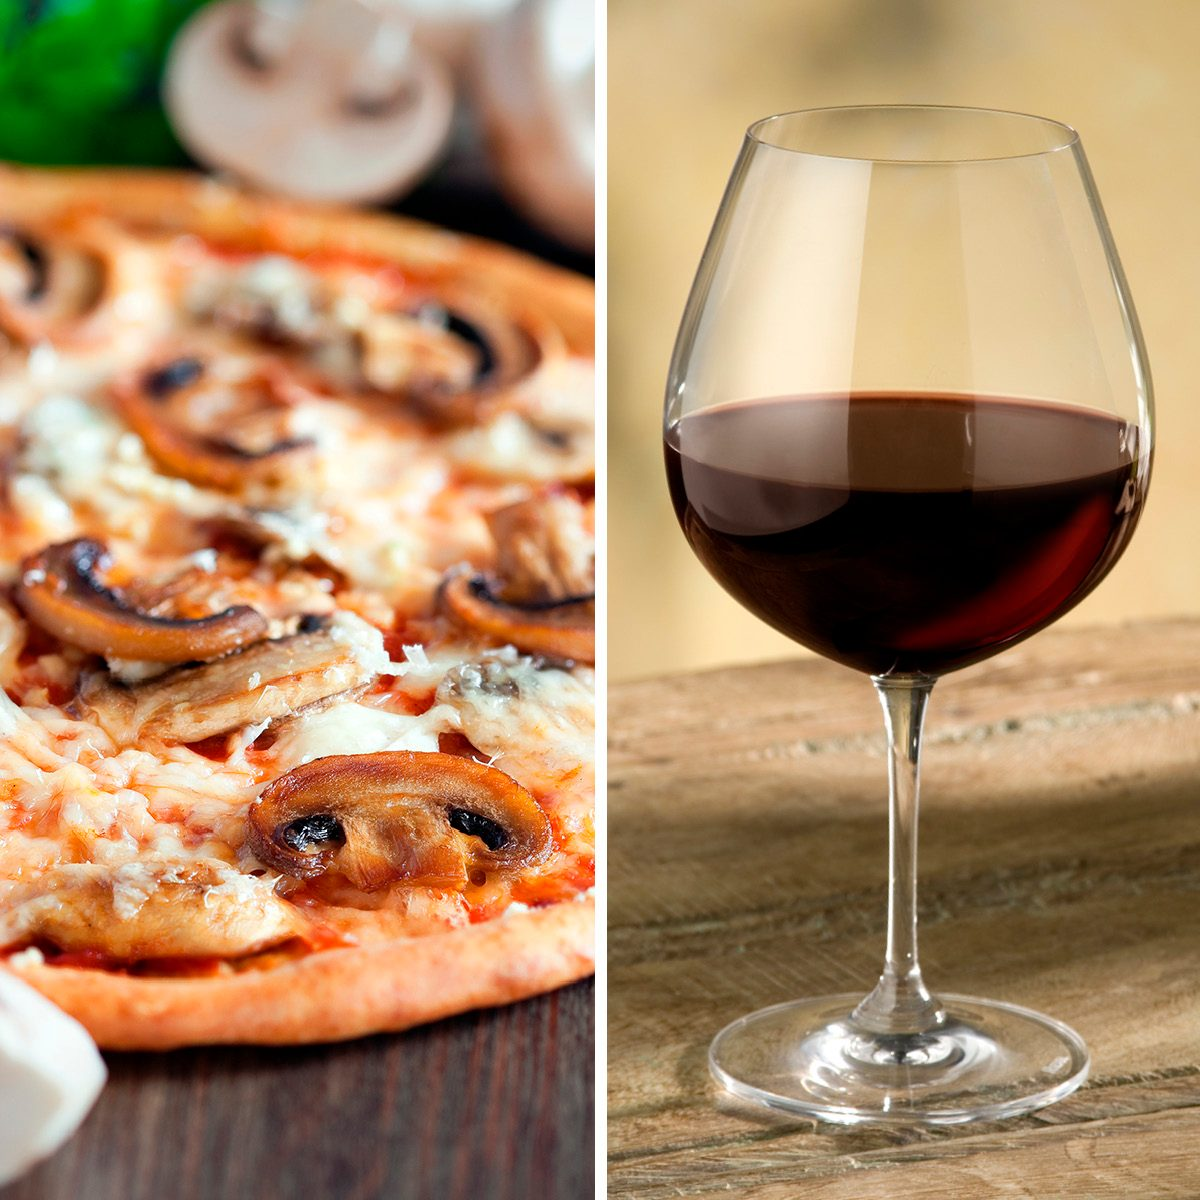 glass of pinot noir wine on rustic wooden table, warm colored background,nice red glow in glass; Shutterstock ID 3077229; Job (TFH, TOH, RD, BNB, CWM, CM): TOH Vegetarian pizza with mushrooms, selective focus; Shutterstock ID 164177081; Job (TFH, TOH, RD, BNB, CWM, CM): TOH